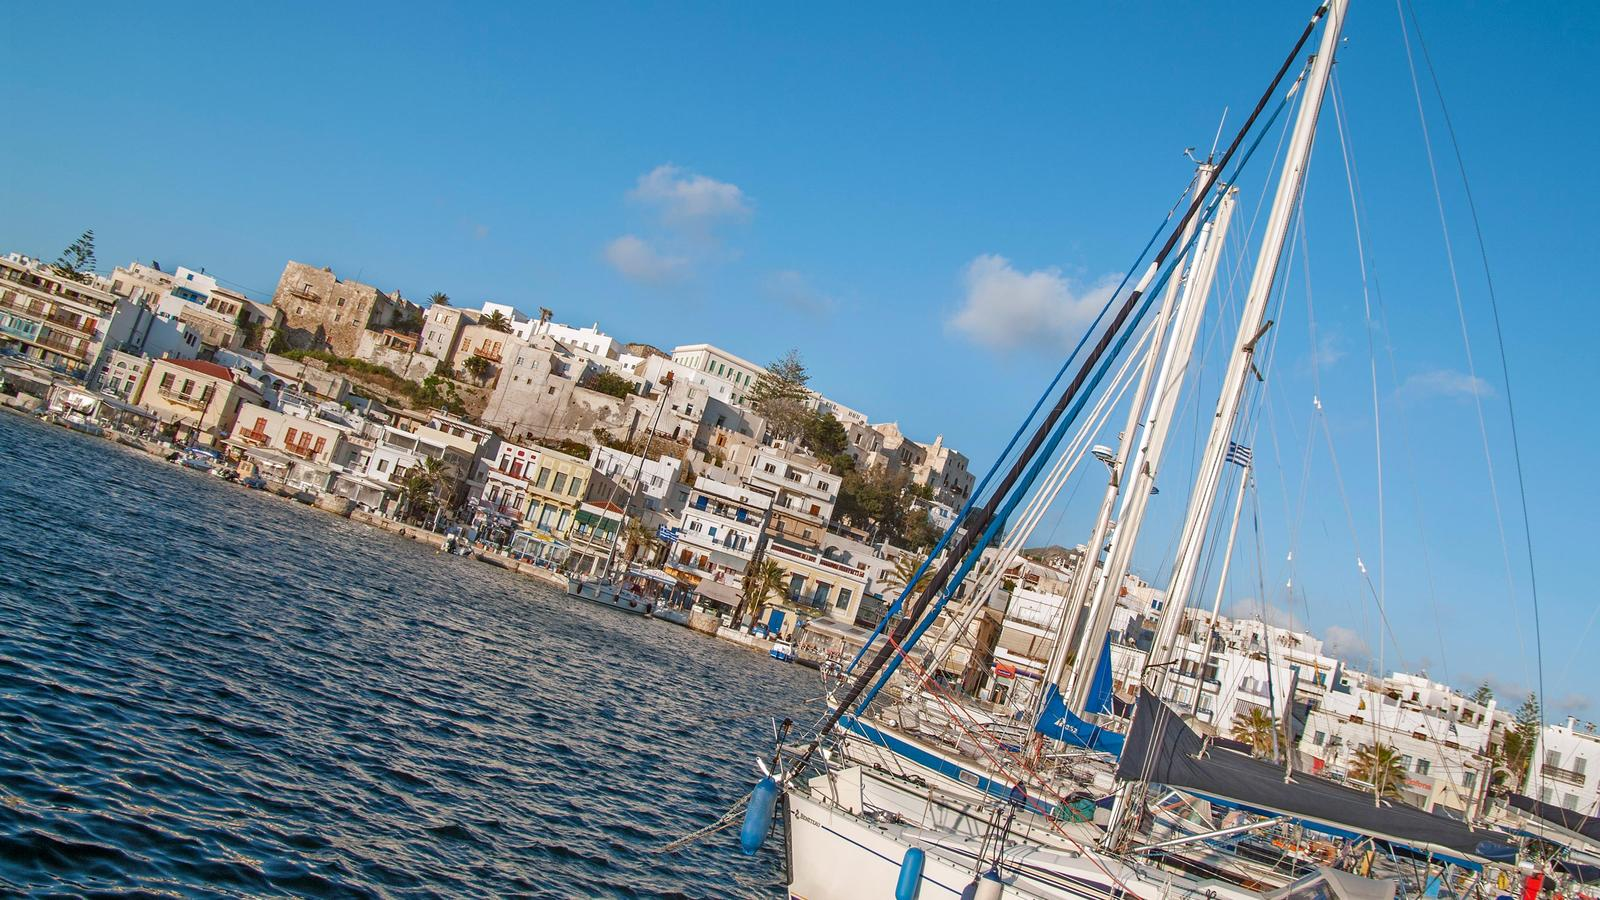 Your boat resting at the Naxos harbour in Greece